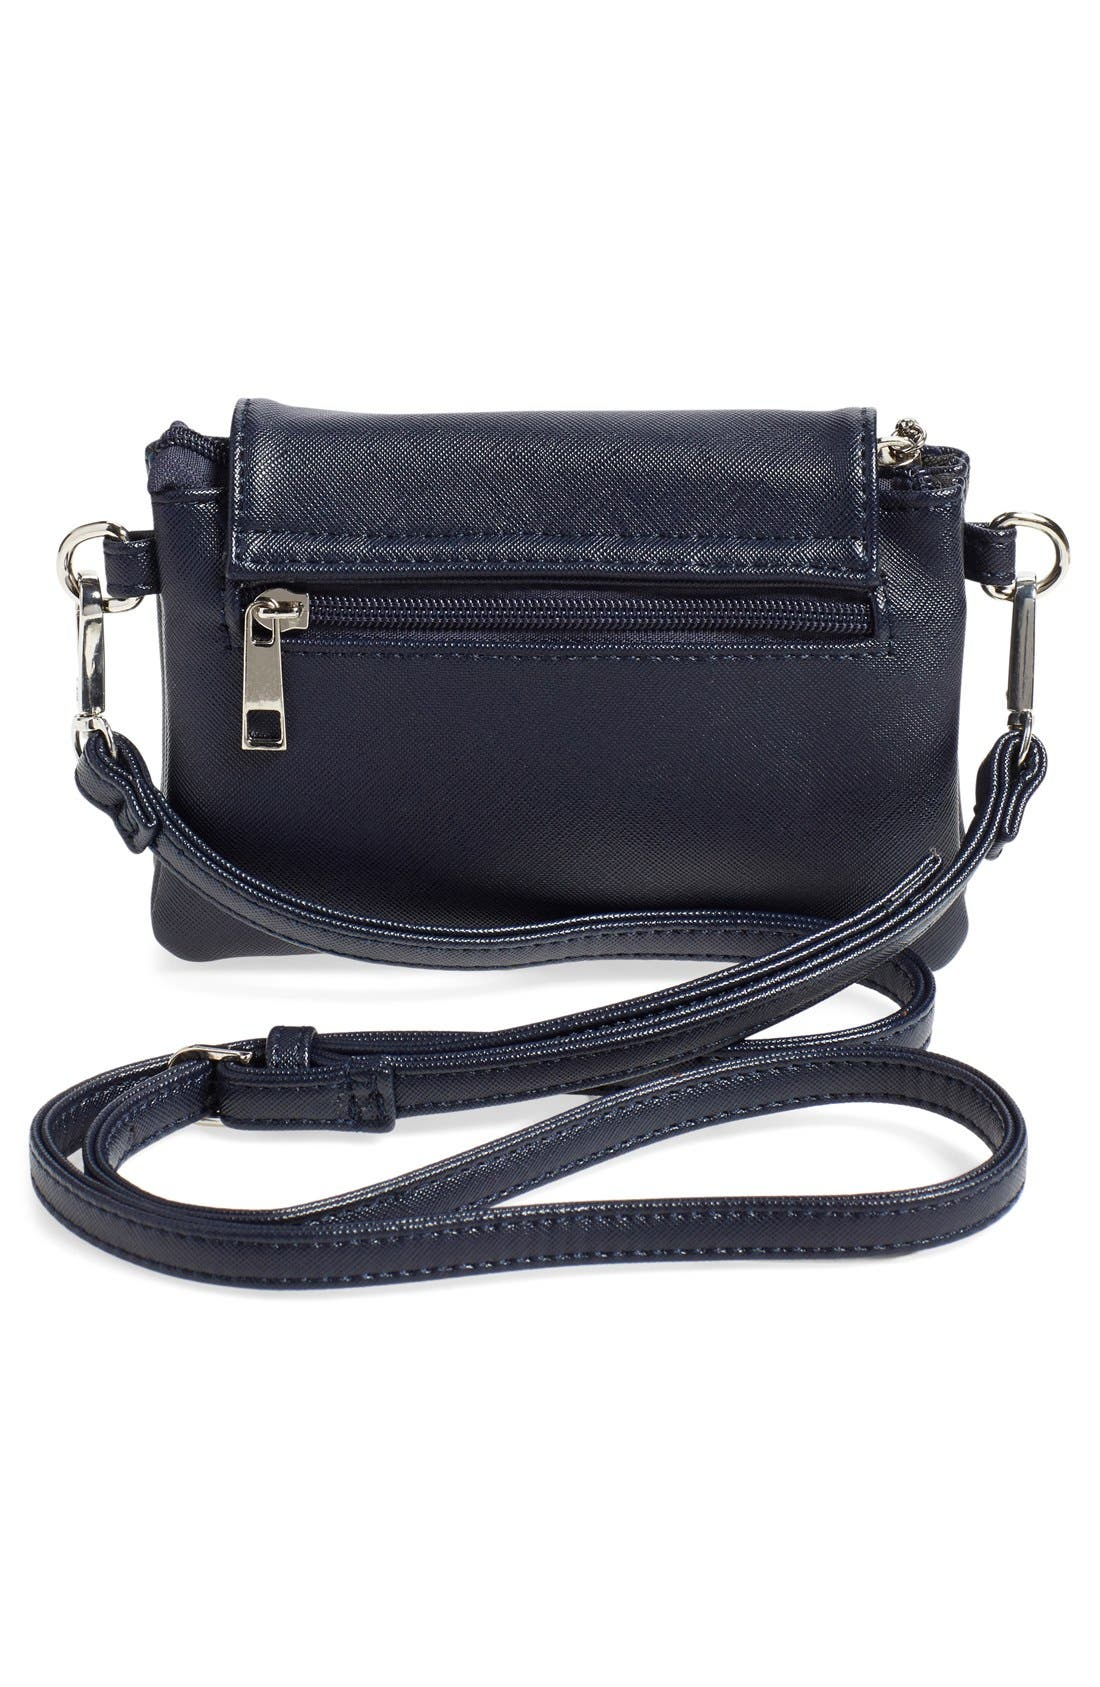 'Mini Clara' Crossbody Bag,                             Alternate thumbnail 6, color,                             020